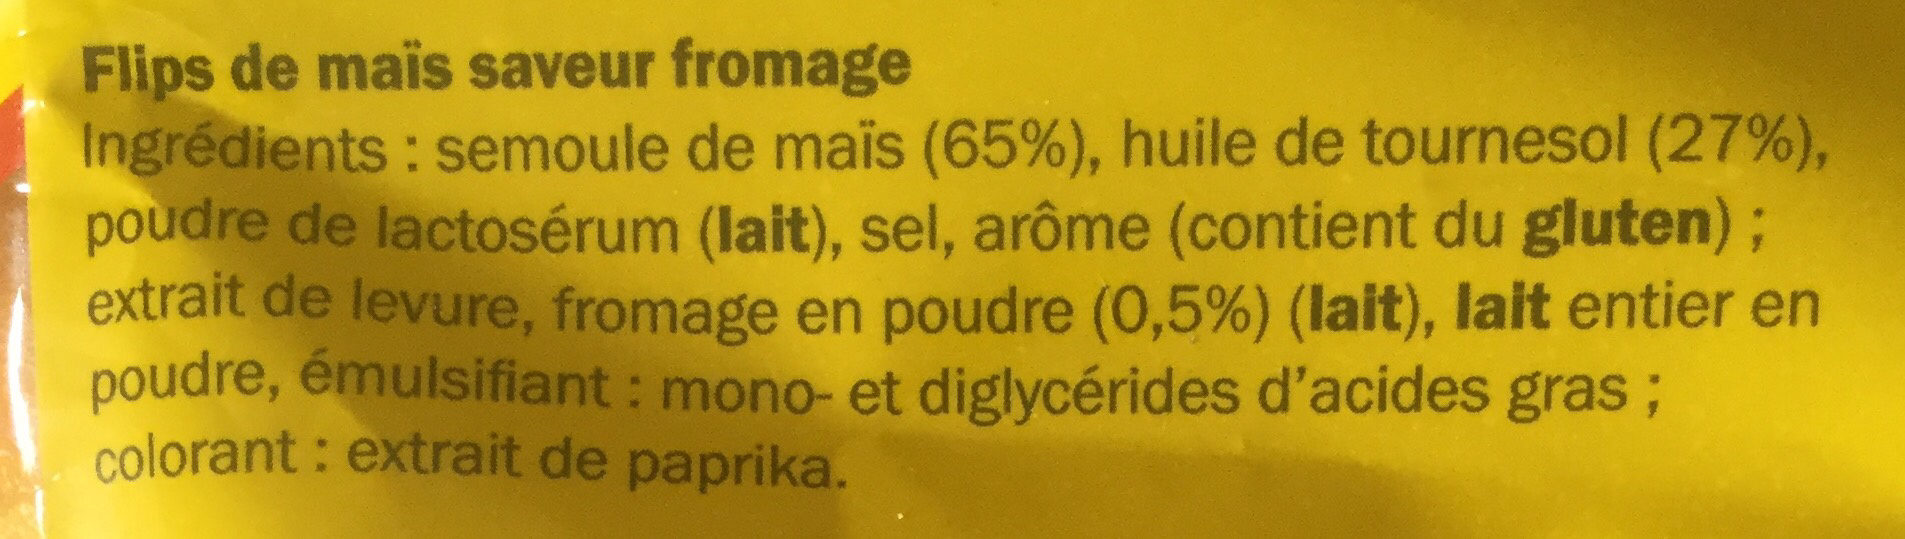 Flips fromage - Ingrédients